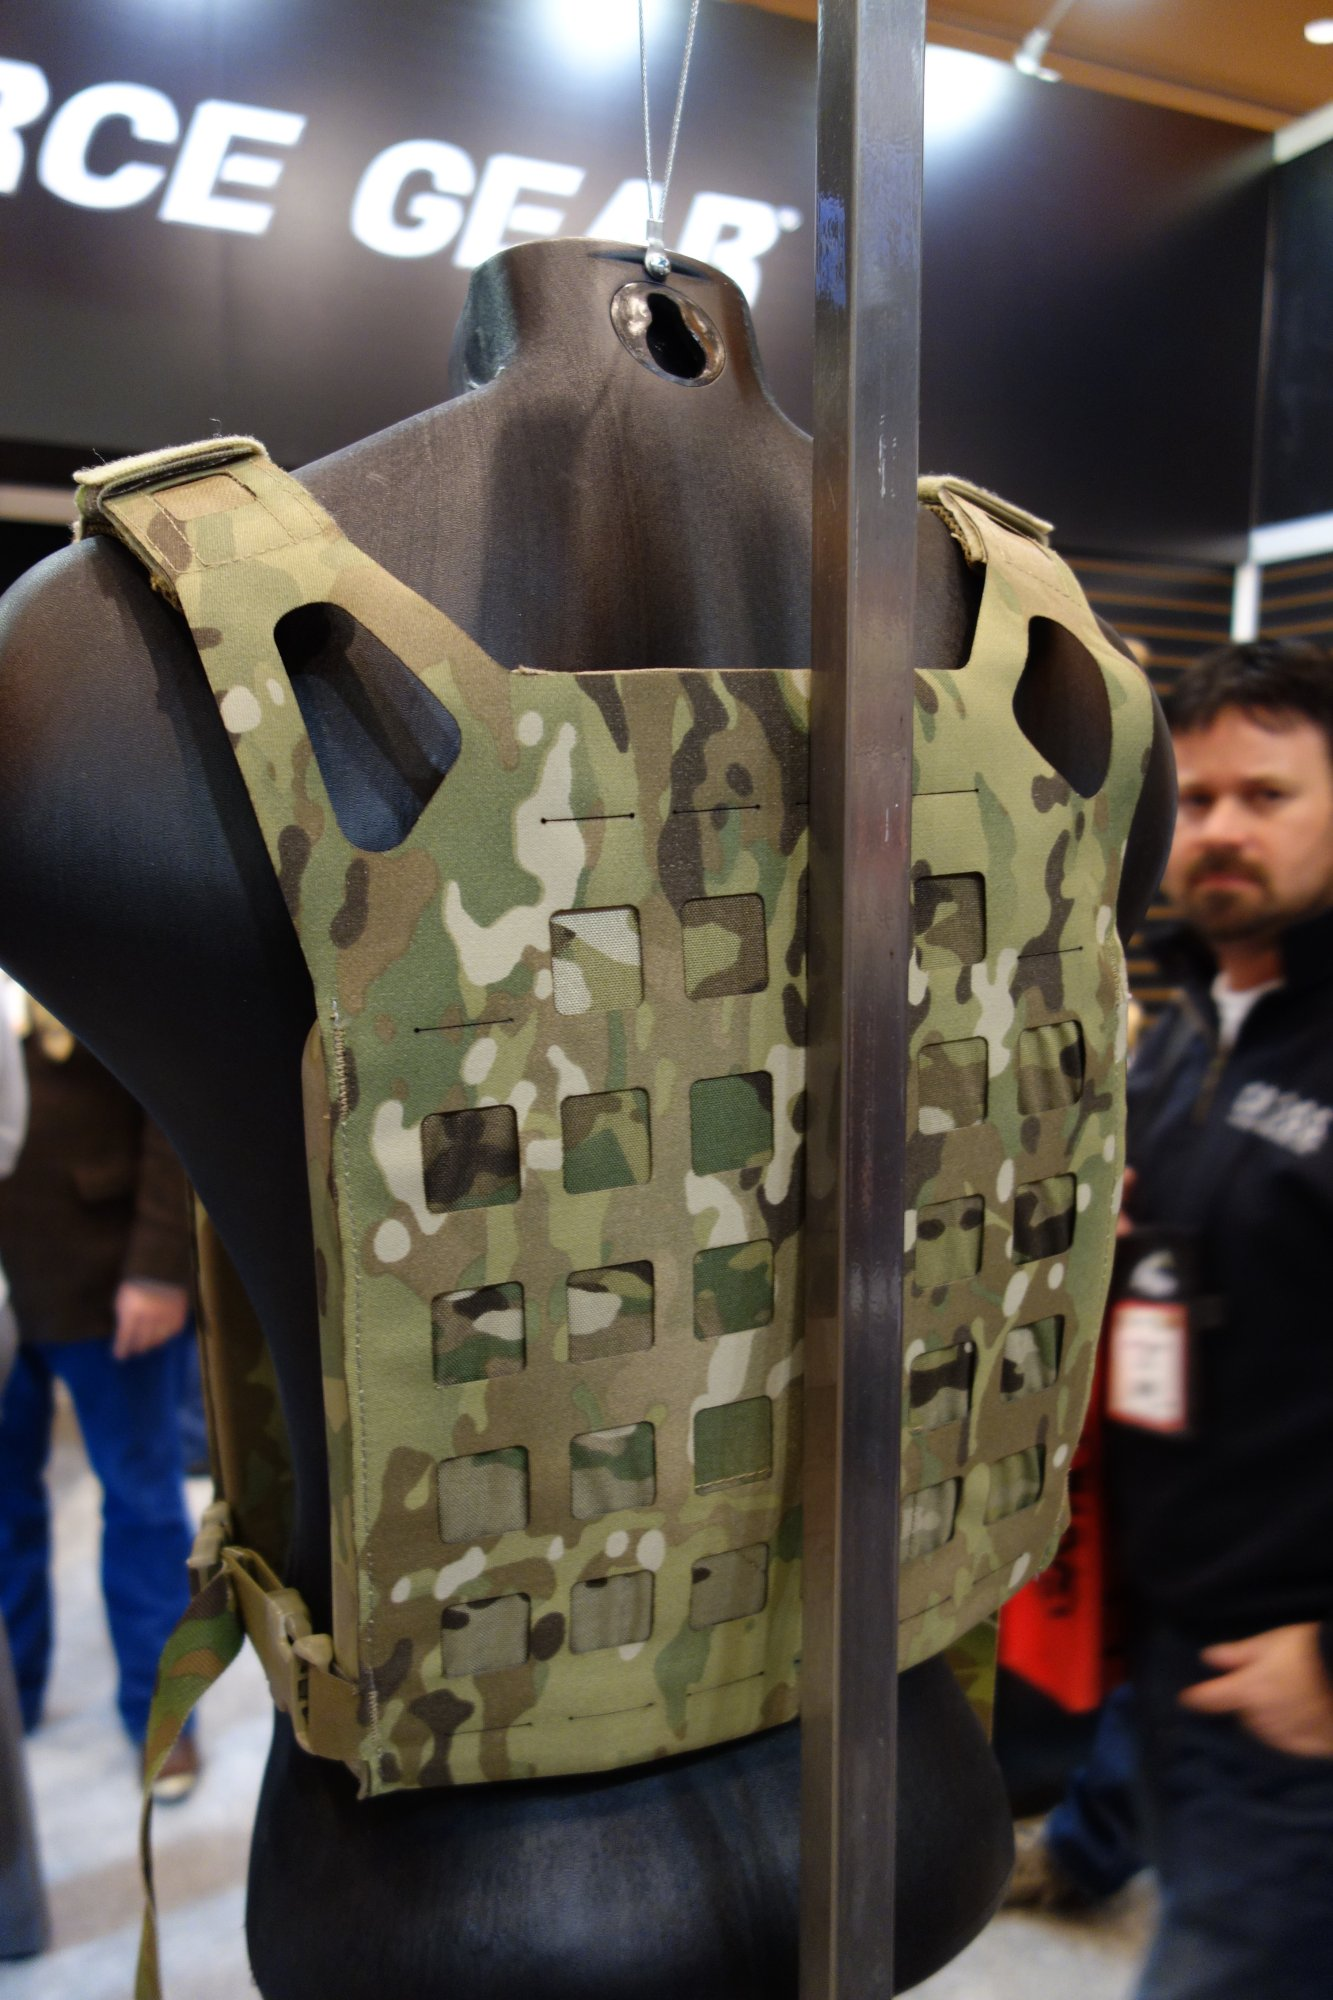 Blue Force Gear BFG PLATEminus Ultra Lightweight Low Profile Low Visibility Tactical Armor Plate Carrier with MOLLEminus and ULTRAcomp Crye MultiCam Camo Pattern at SHOT Show 2013 David Crane DefenseReview.com DR 5 Blue Force Gear (BFG) PLATEminus Ultra Lightweight Low Profile/Low Visibility Tactical Armor Plate Carrier and BELTminus and SPLITminus Battle Belt/Chest Rig/Harness Systems with MOLLEminus Cutaway MOLLE System and ULTRAcomp Laminate: Tactical Body Armor Goes Super Minimalist